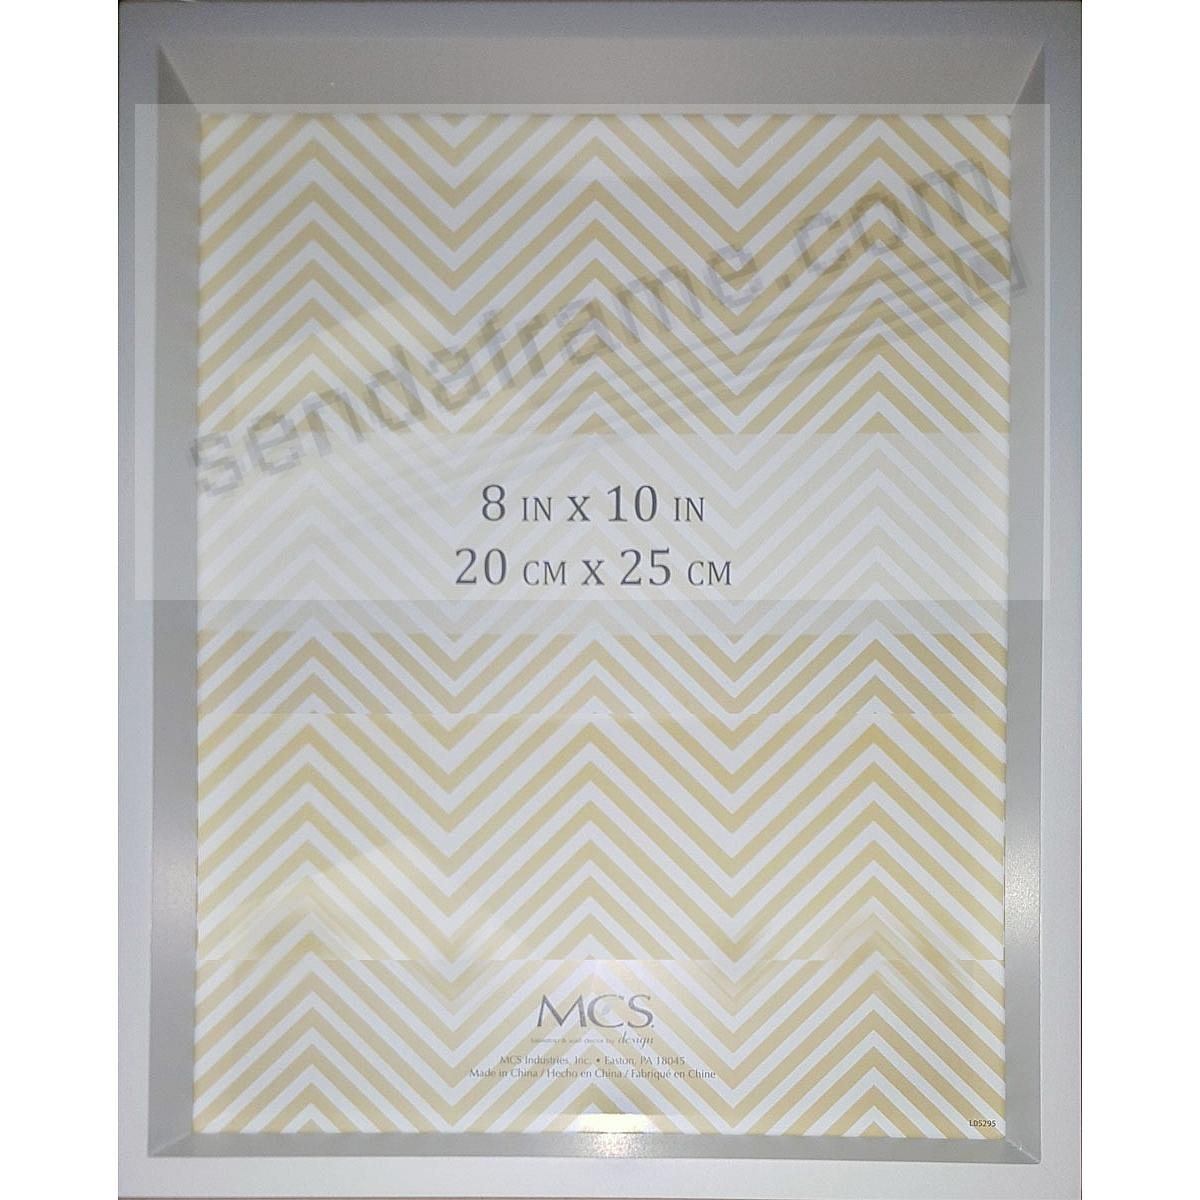 Light-Gray Shadow Box ¾in depth Wood 8x10 frame by MCS®